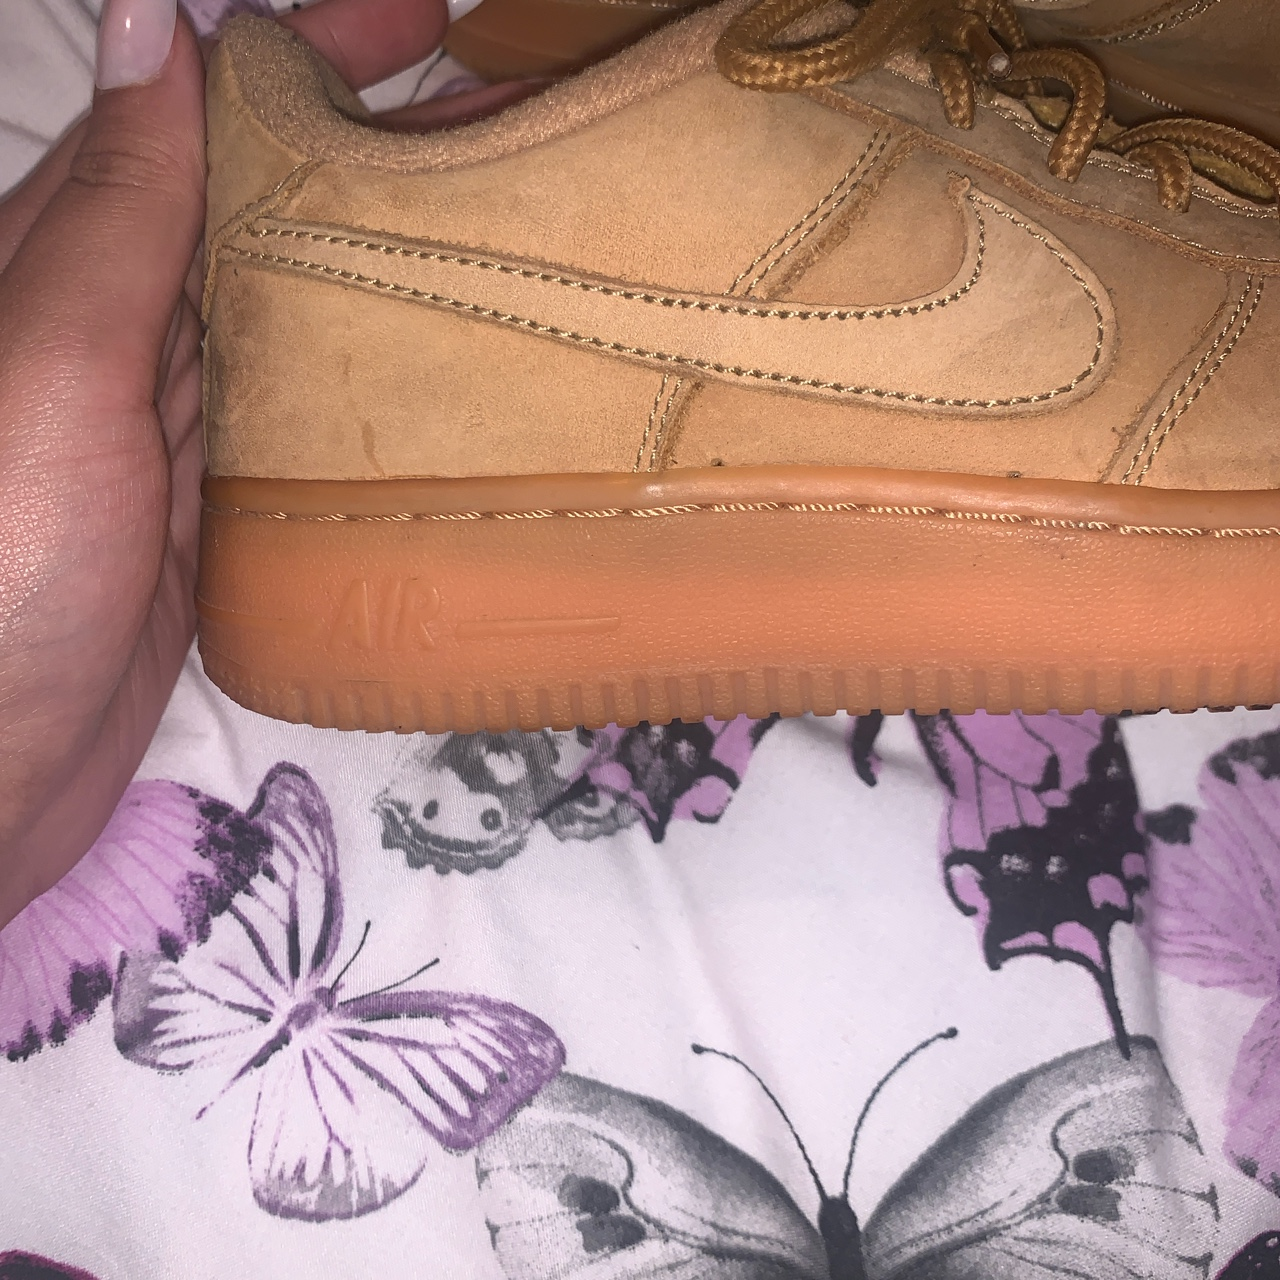 Nike sand colour Air Force 1 low